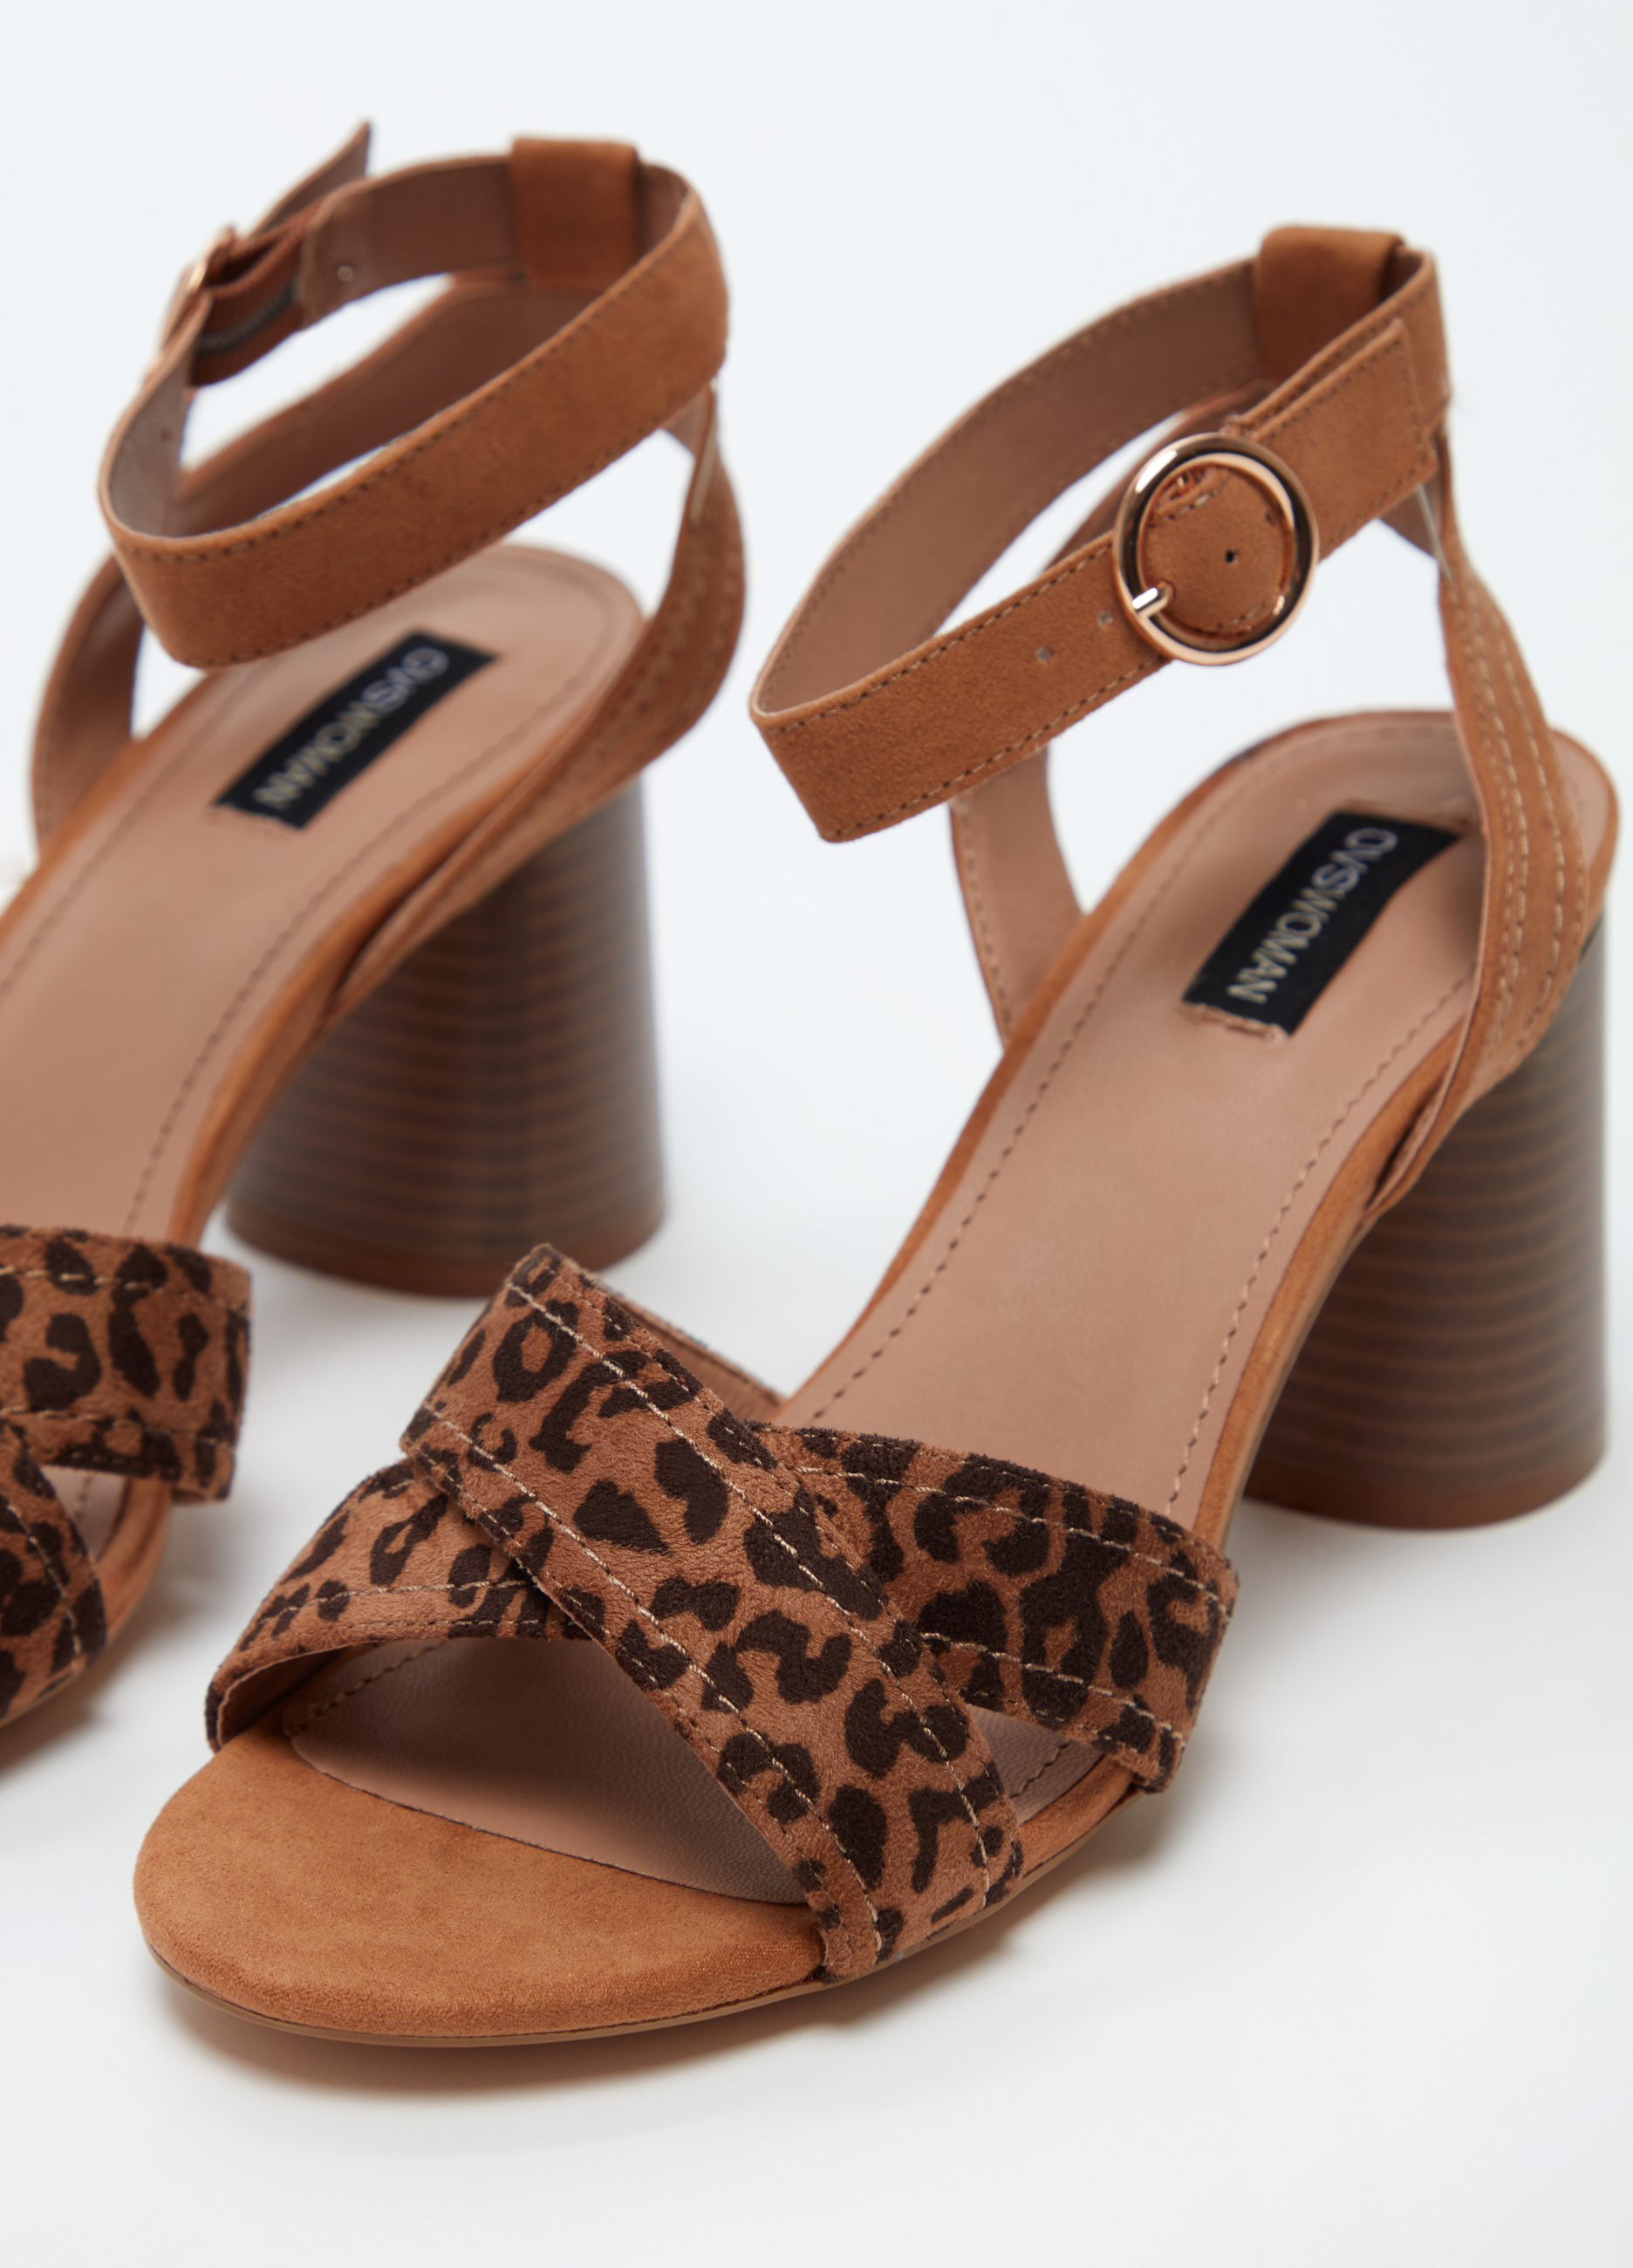 bcd66ab528d5 Sandals with crossover animal print straps | OVS